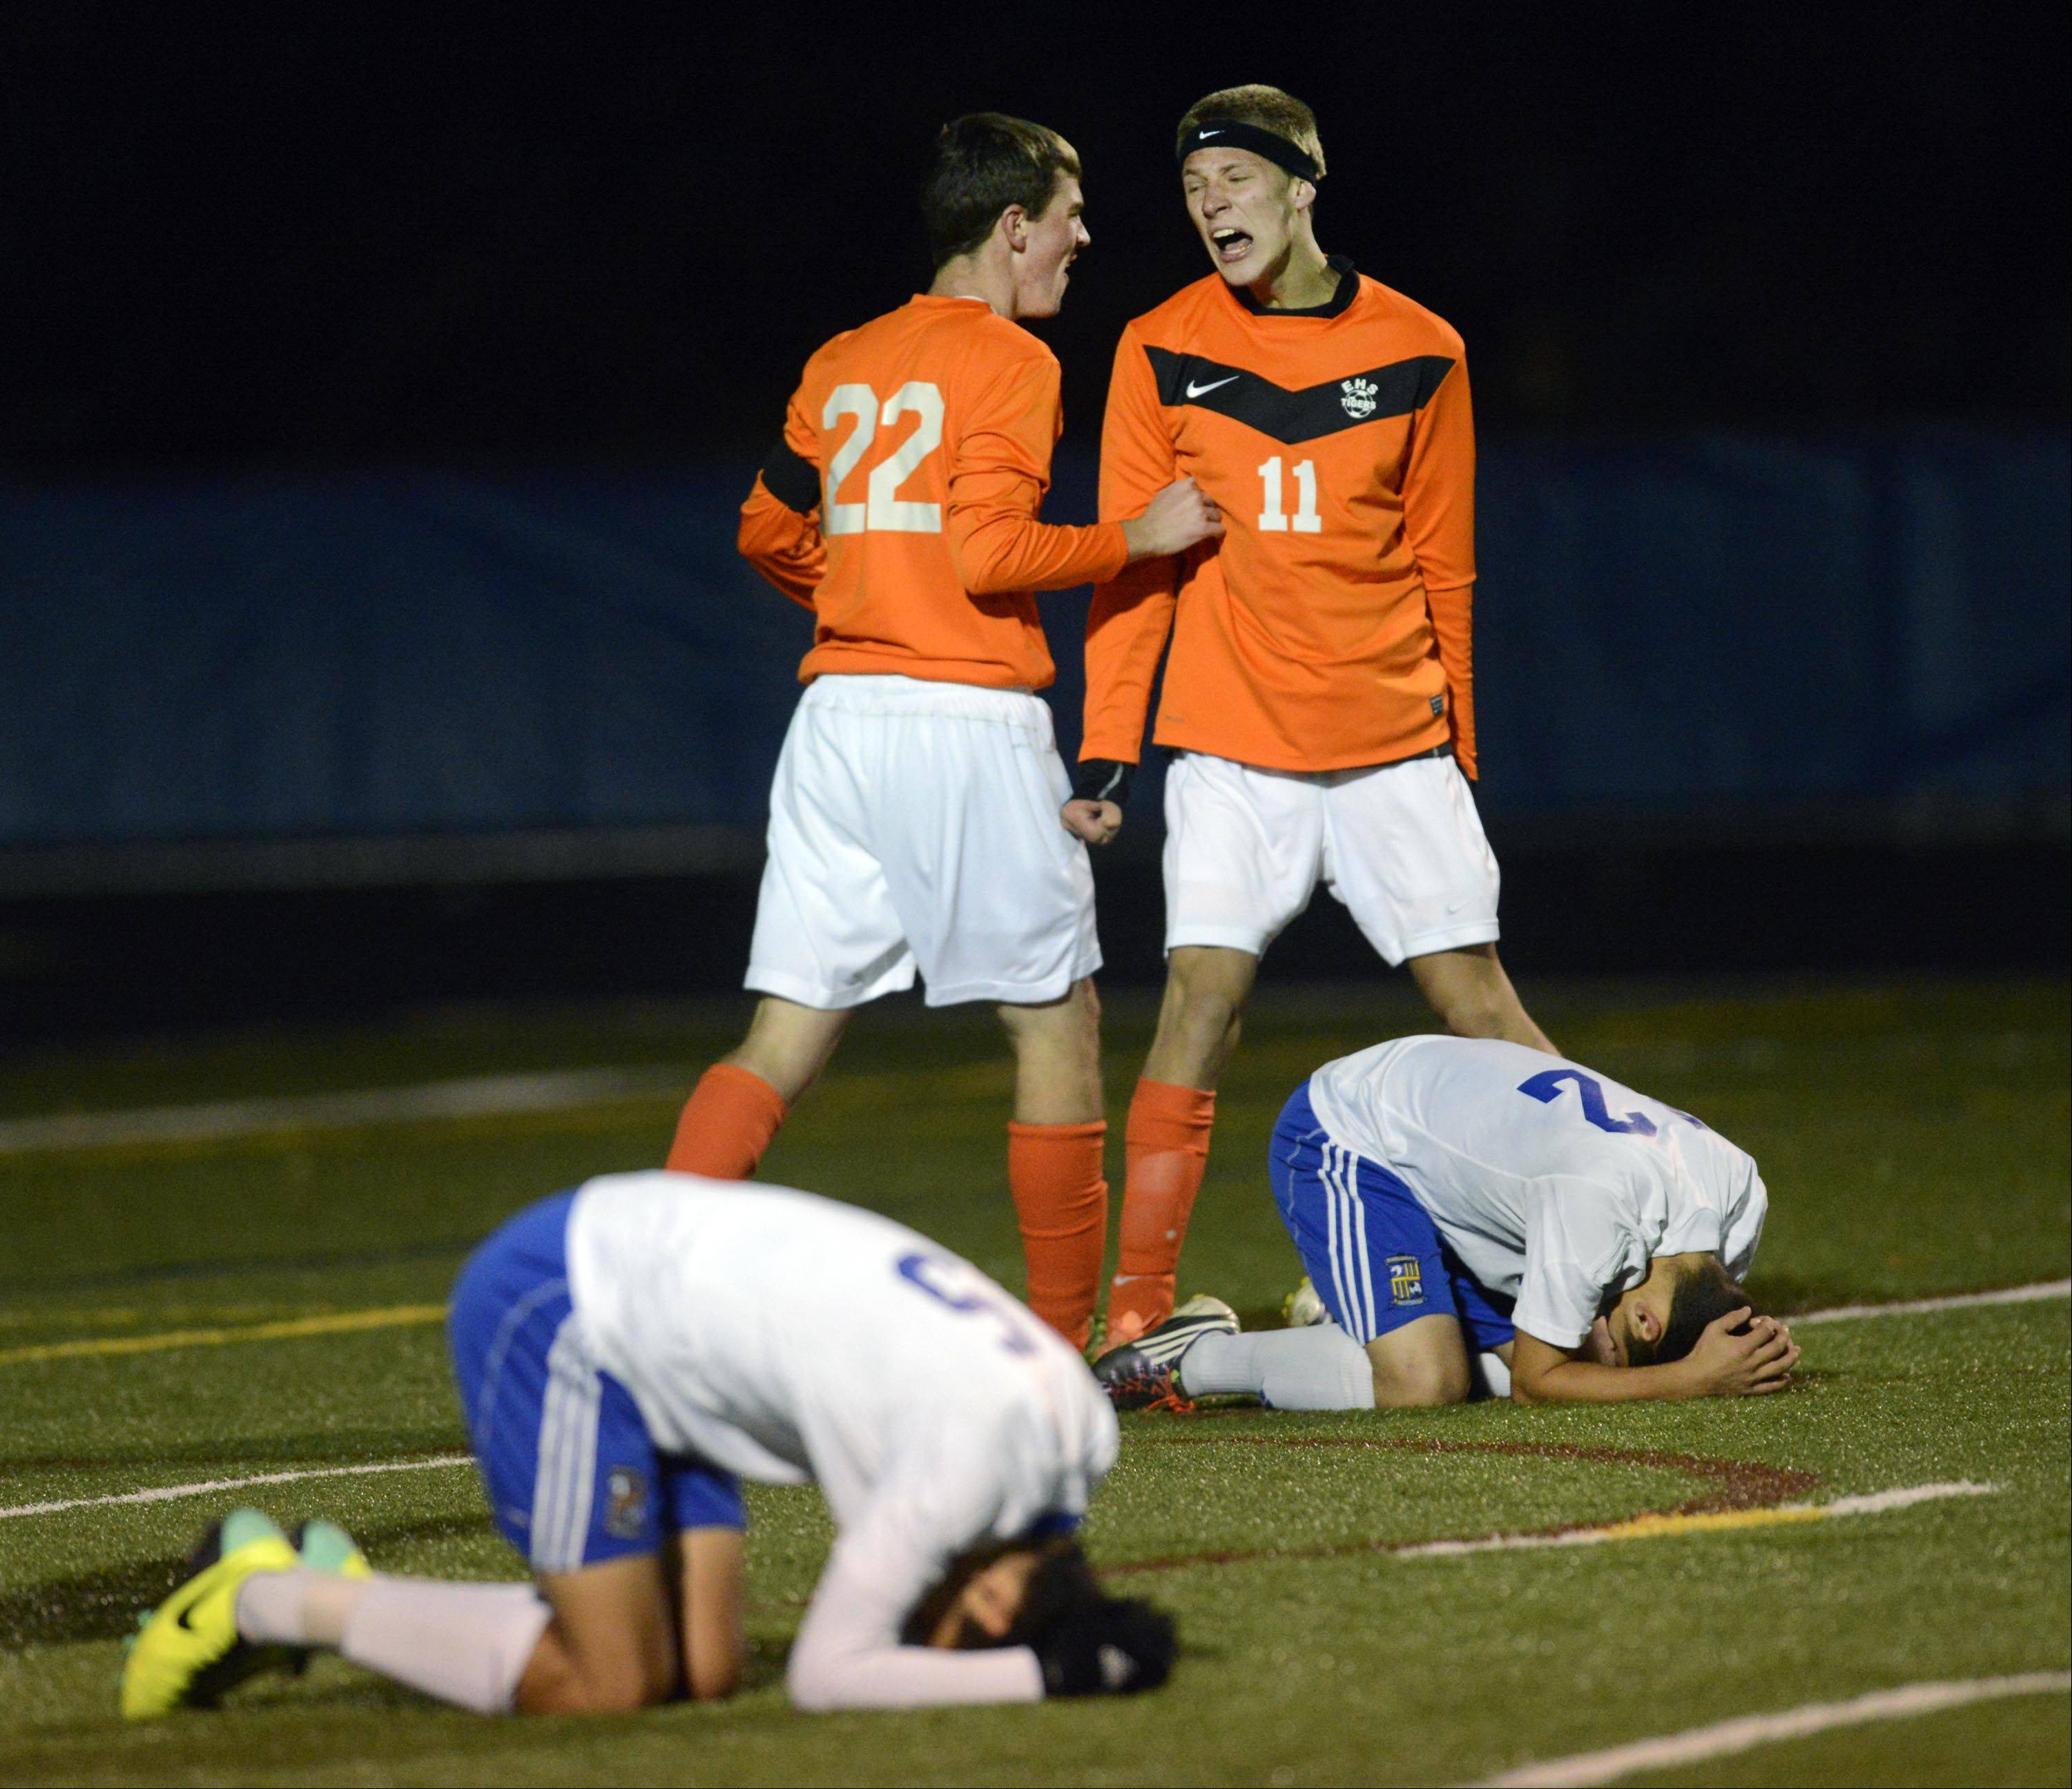 Wheeling's Michael hernandez, foreground, and Alfredo Rocha fall to the turf after losing to Edwardsville in Saturday's Class 3A soccer state championship in Hoffman Estates.